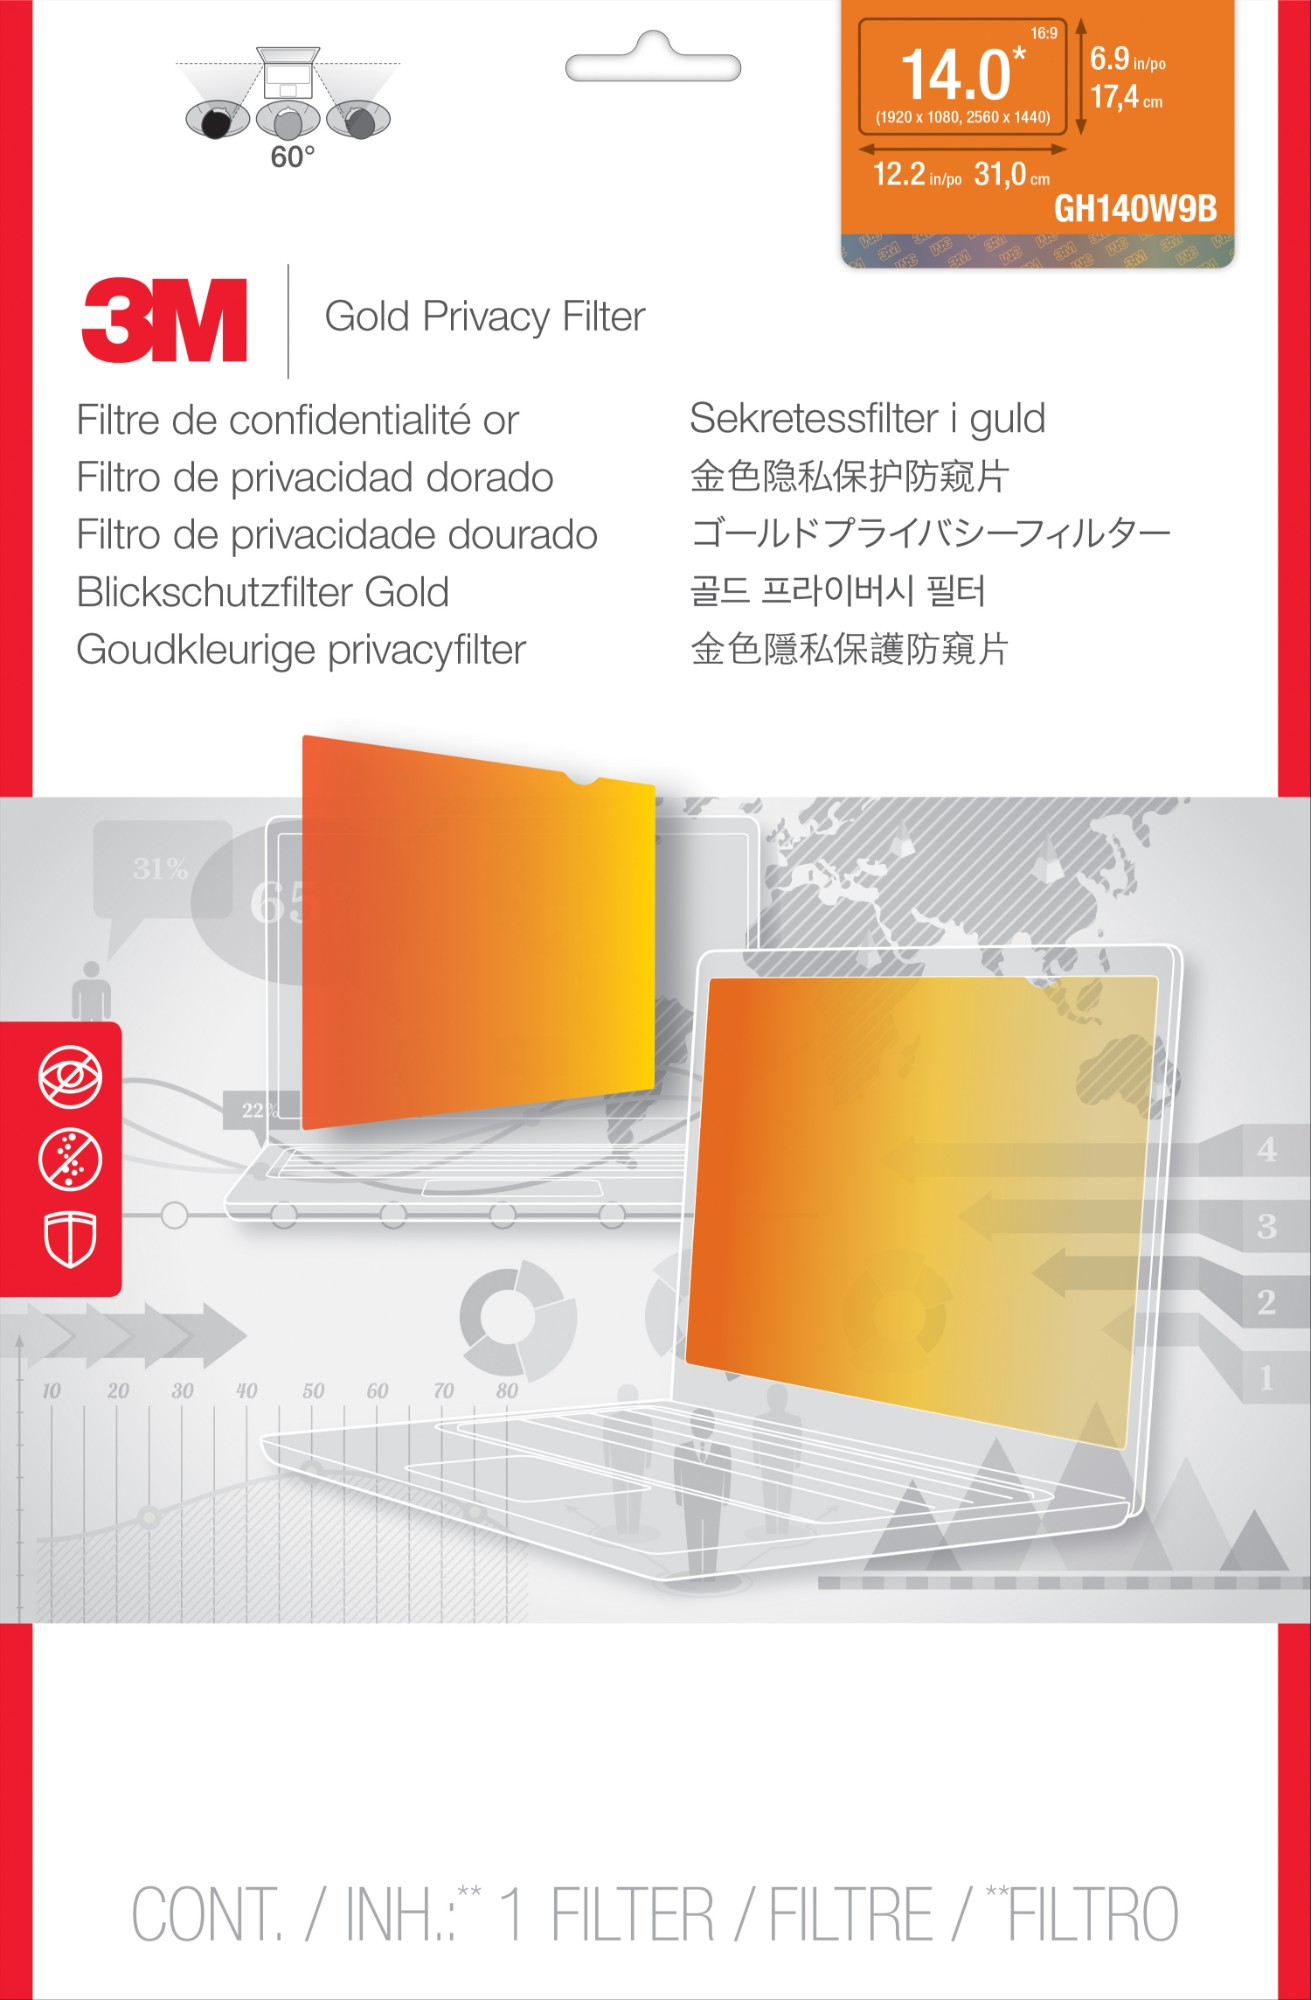 3M Privacy Screen Protectors for 14 Widescreen High Resolution Display 1920x1080 GH140W9B Transparent Gold